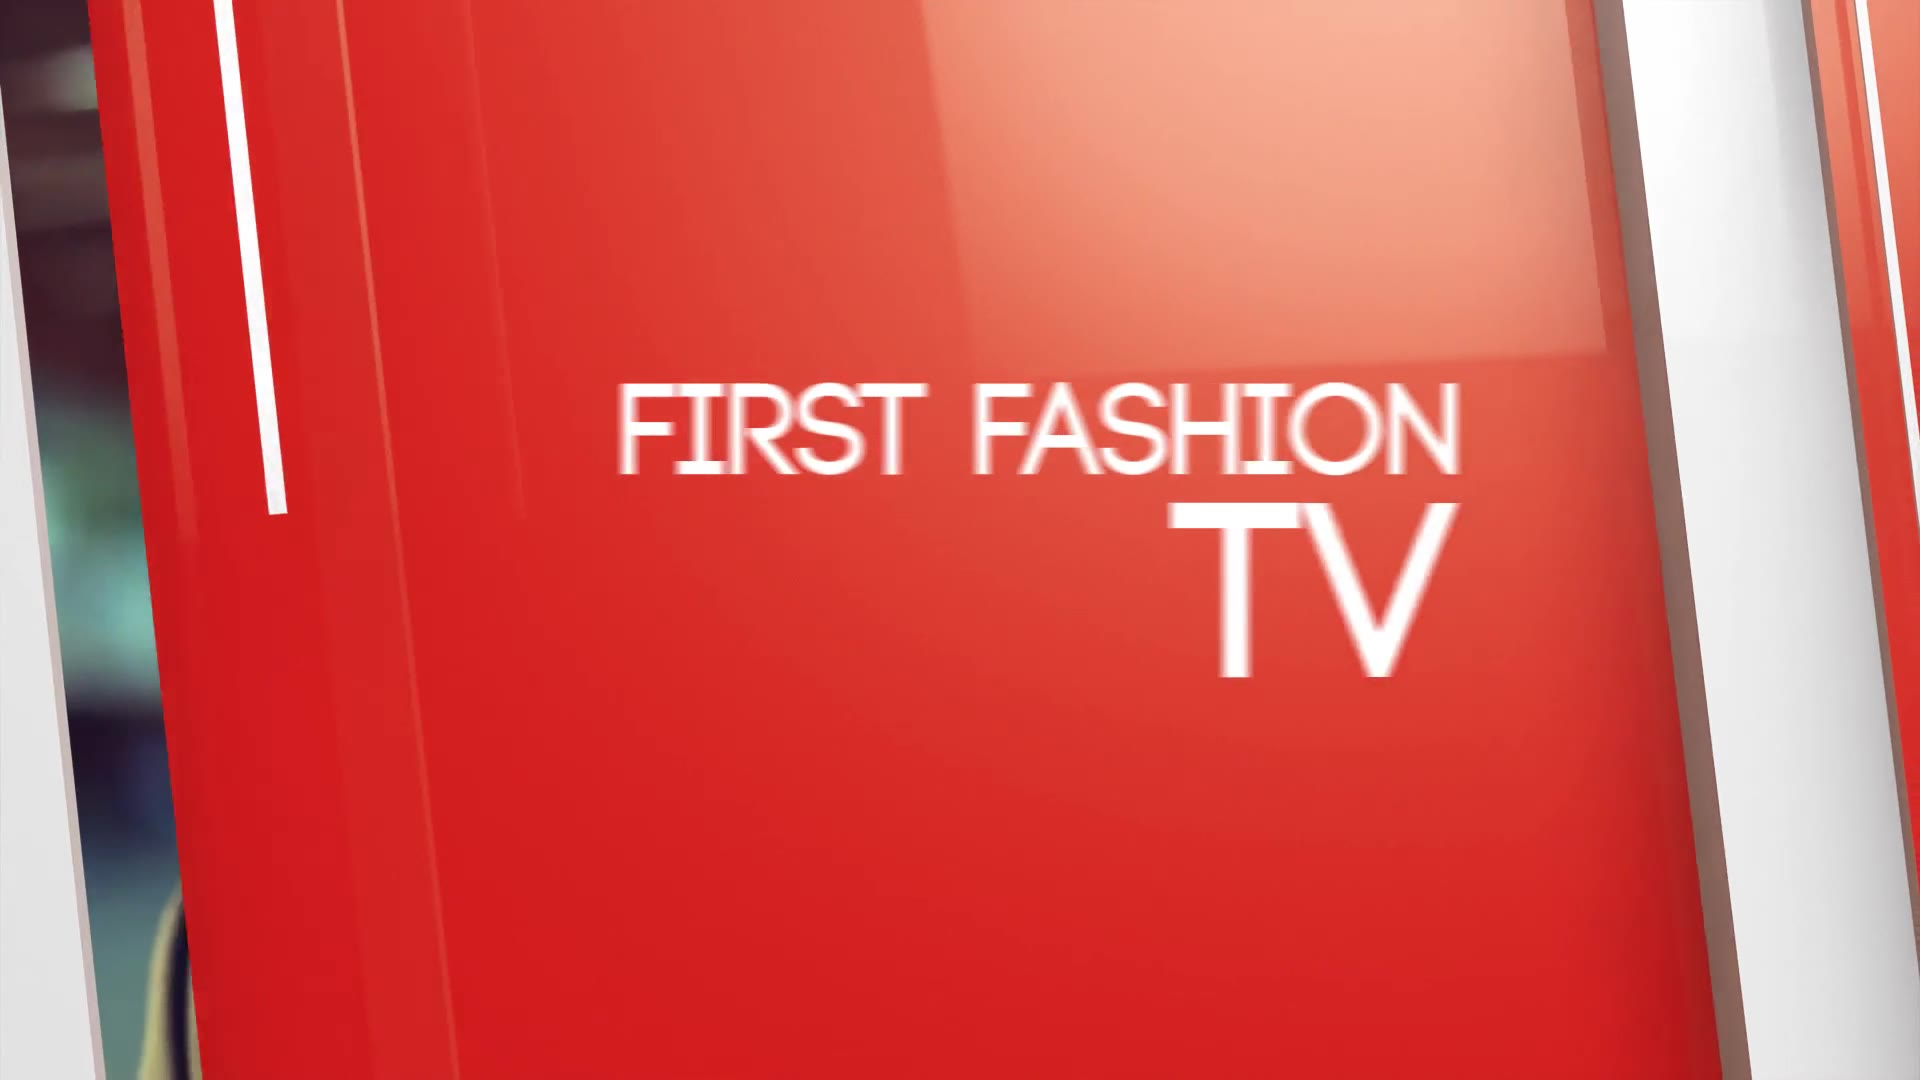 Fashion Broadcast - Download Videohive 5236916